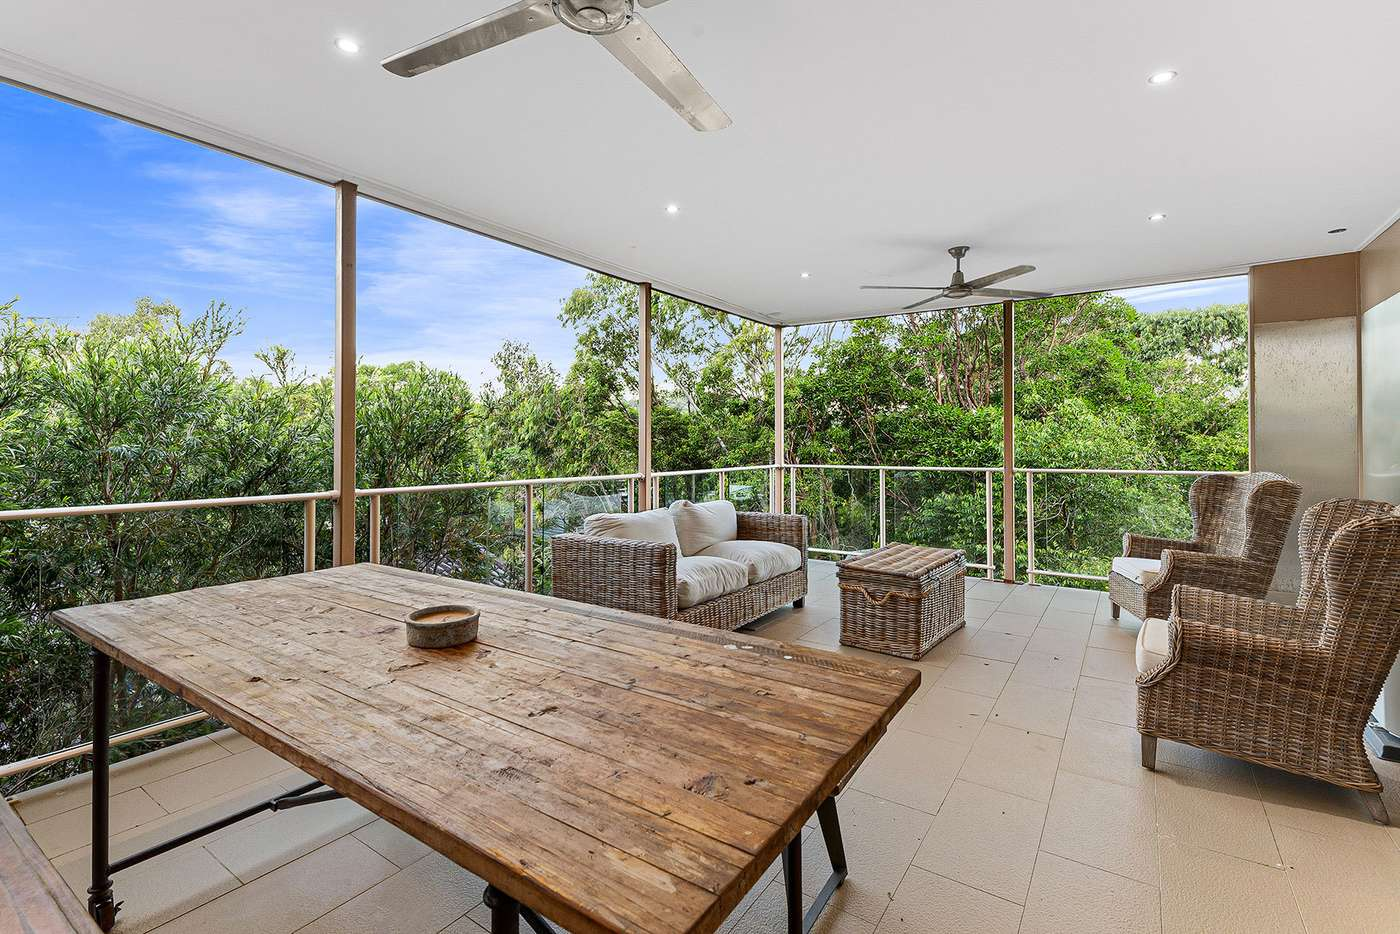 Fifth view of Homely house listing, 2 Ghara Court, Coolum Beach QLD 4573